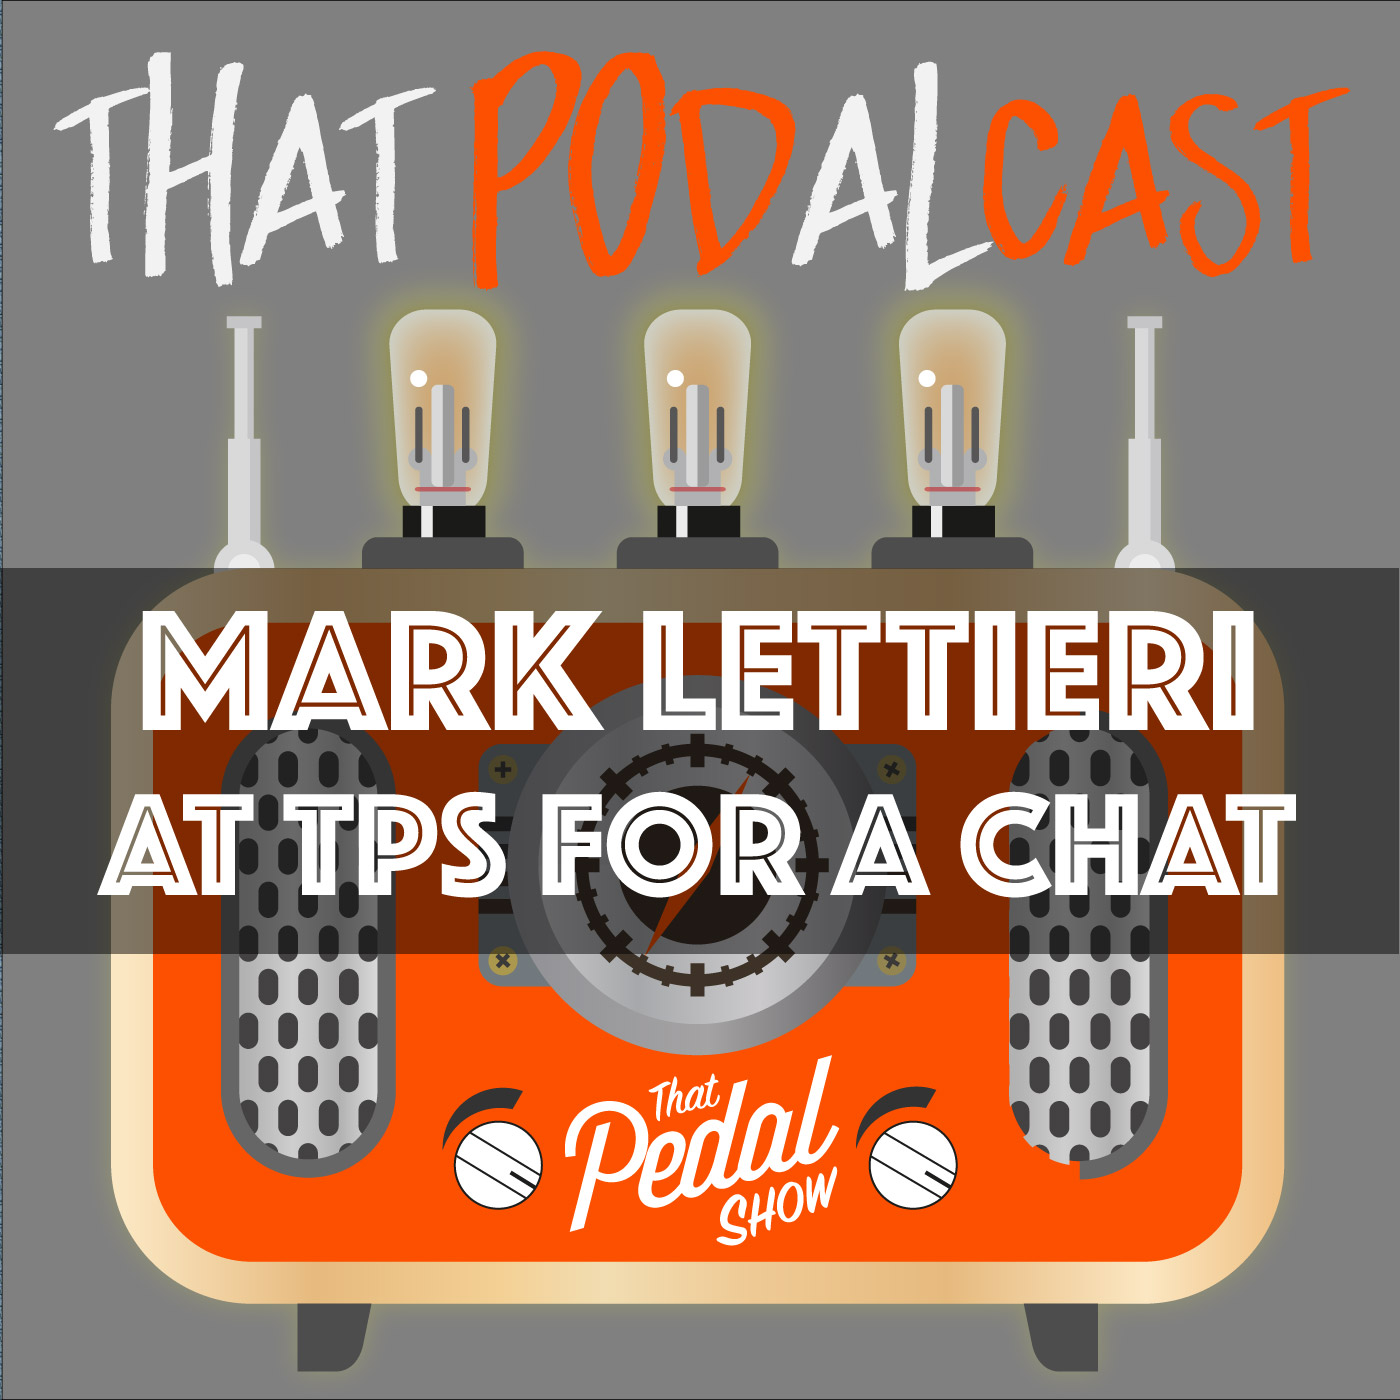 Mark Lettieri Visits That Pedal Show